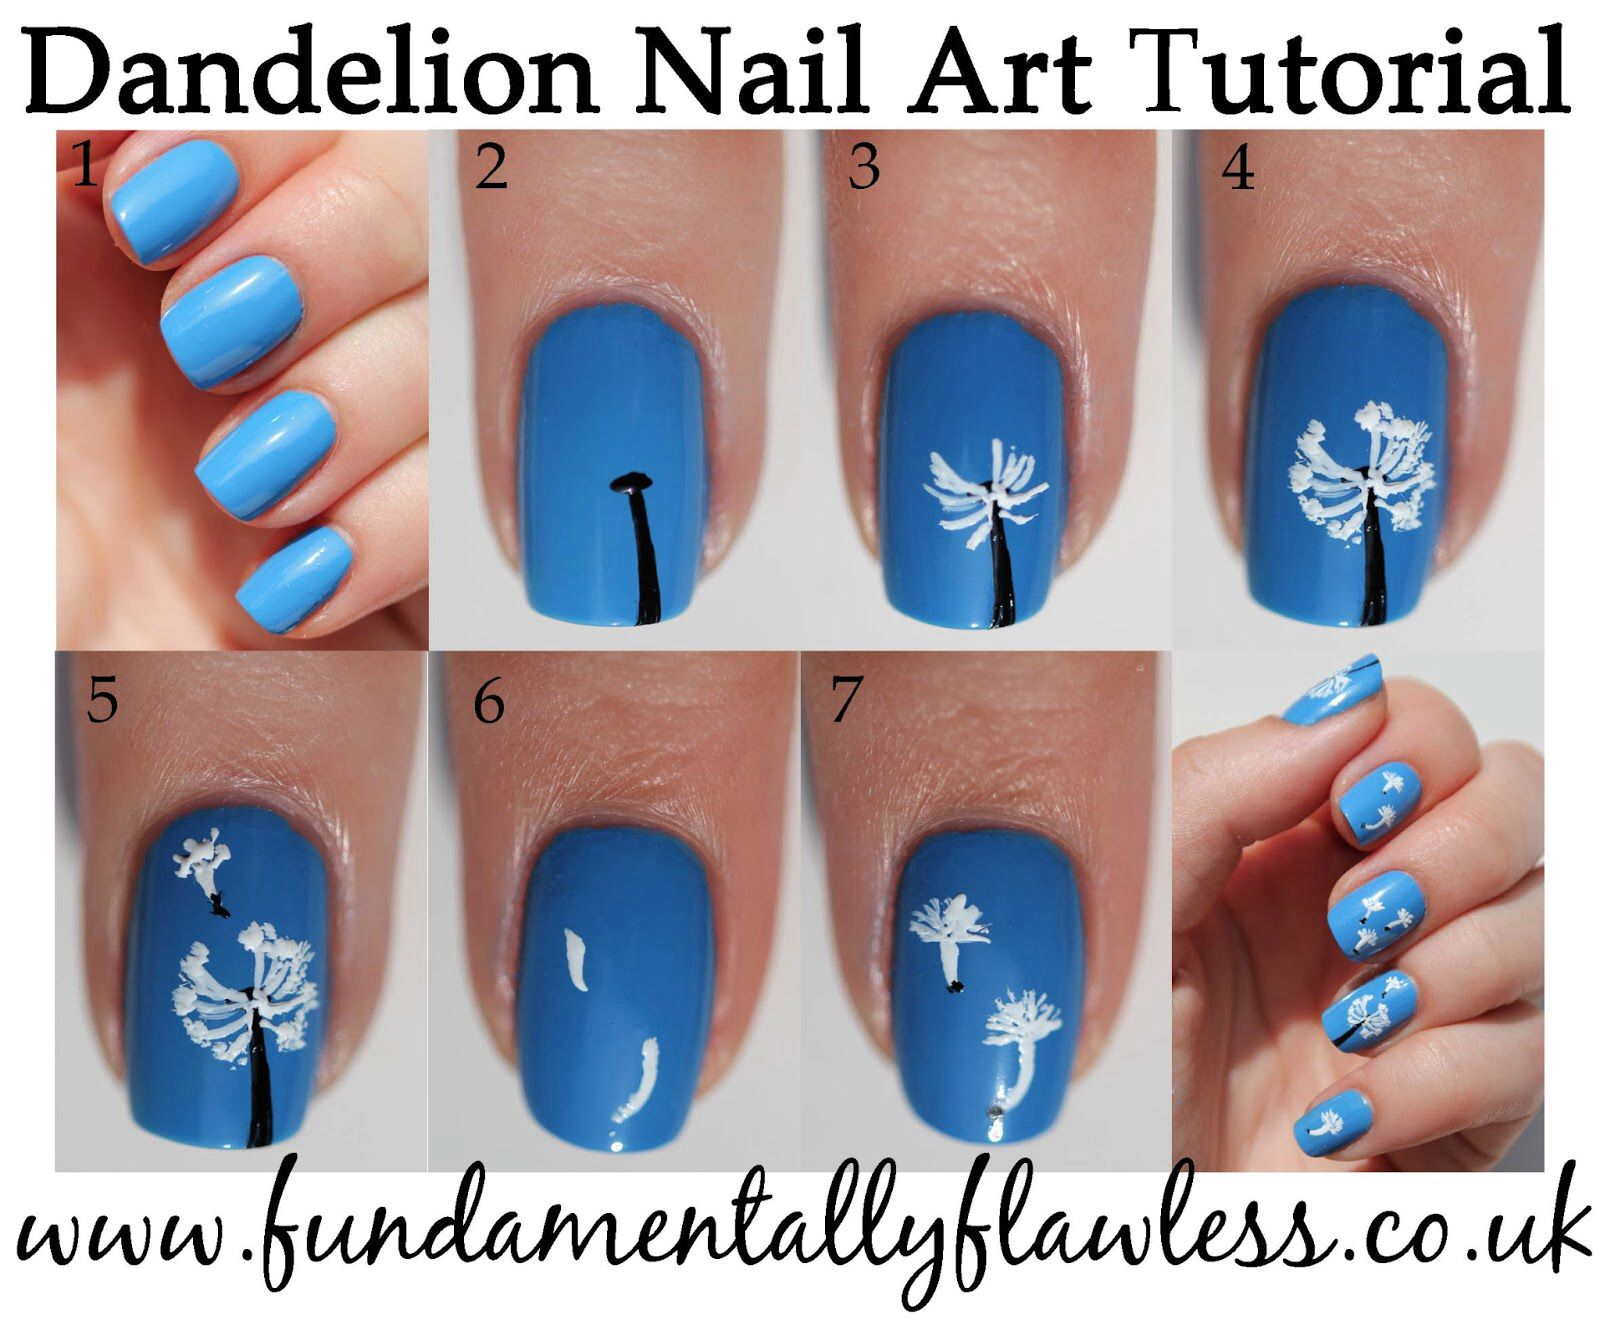 Pin by »Neveah Cox« on »Nail Art« | Pinterest | Dandelions